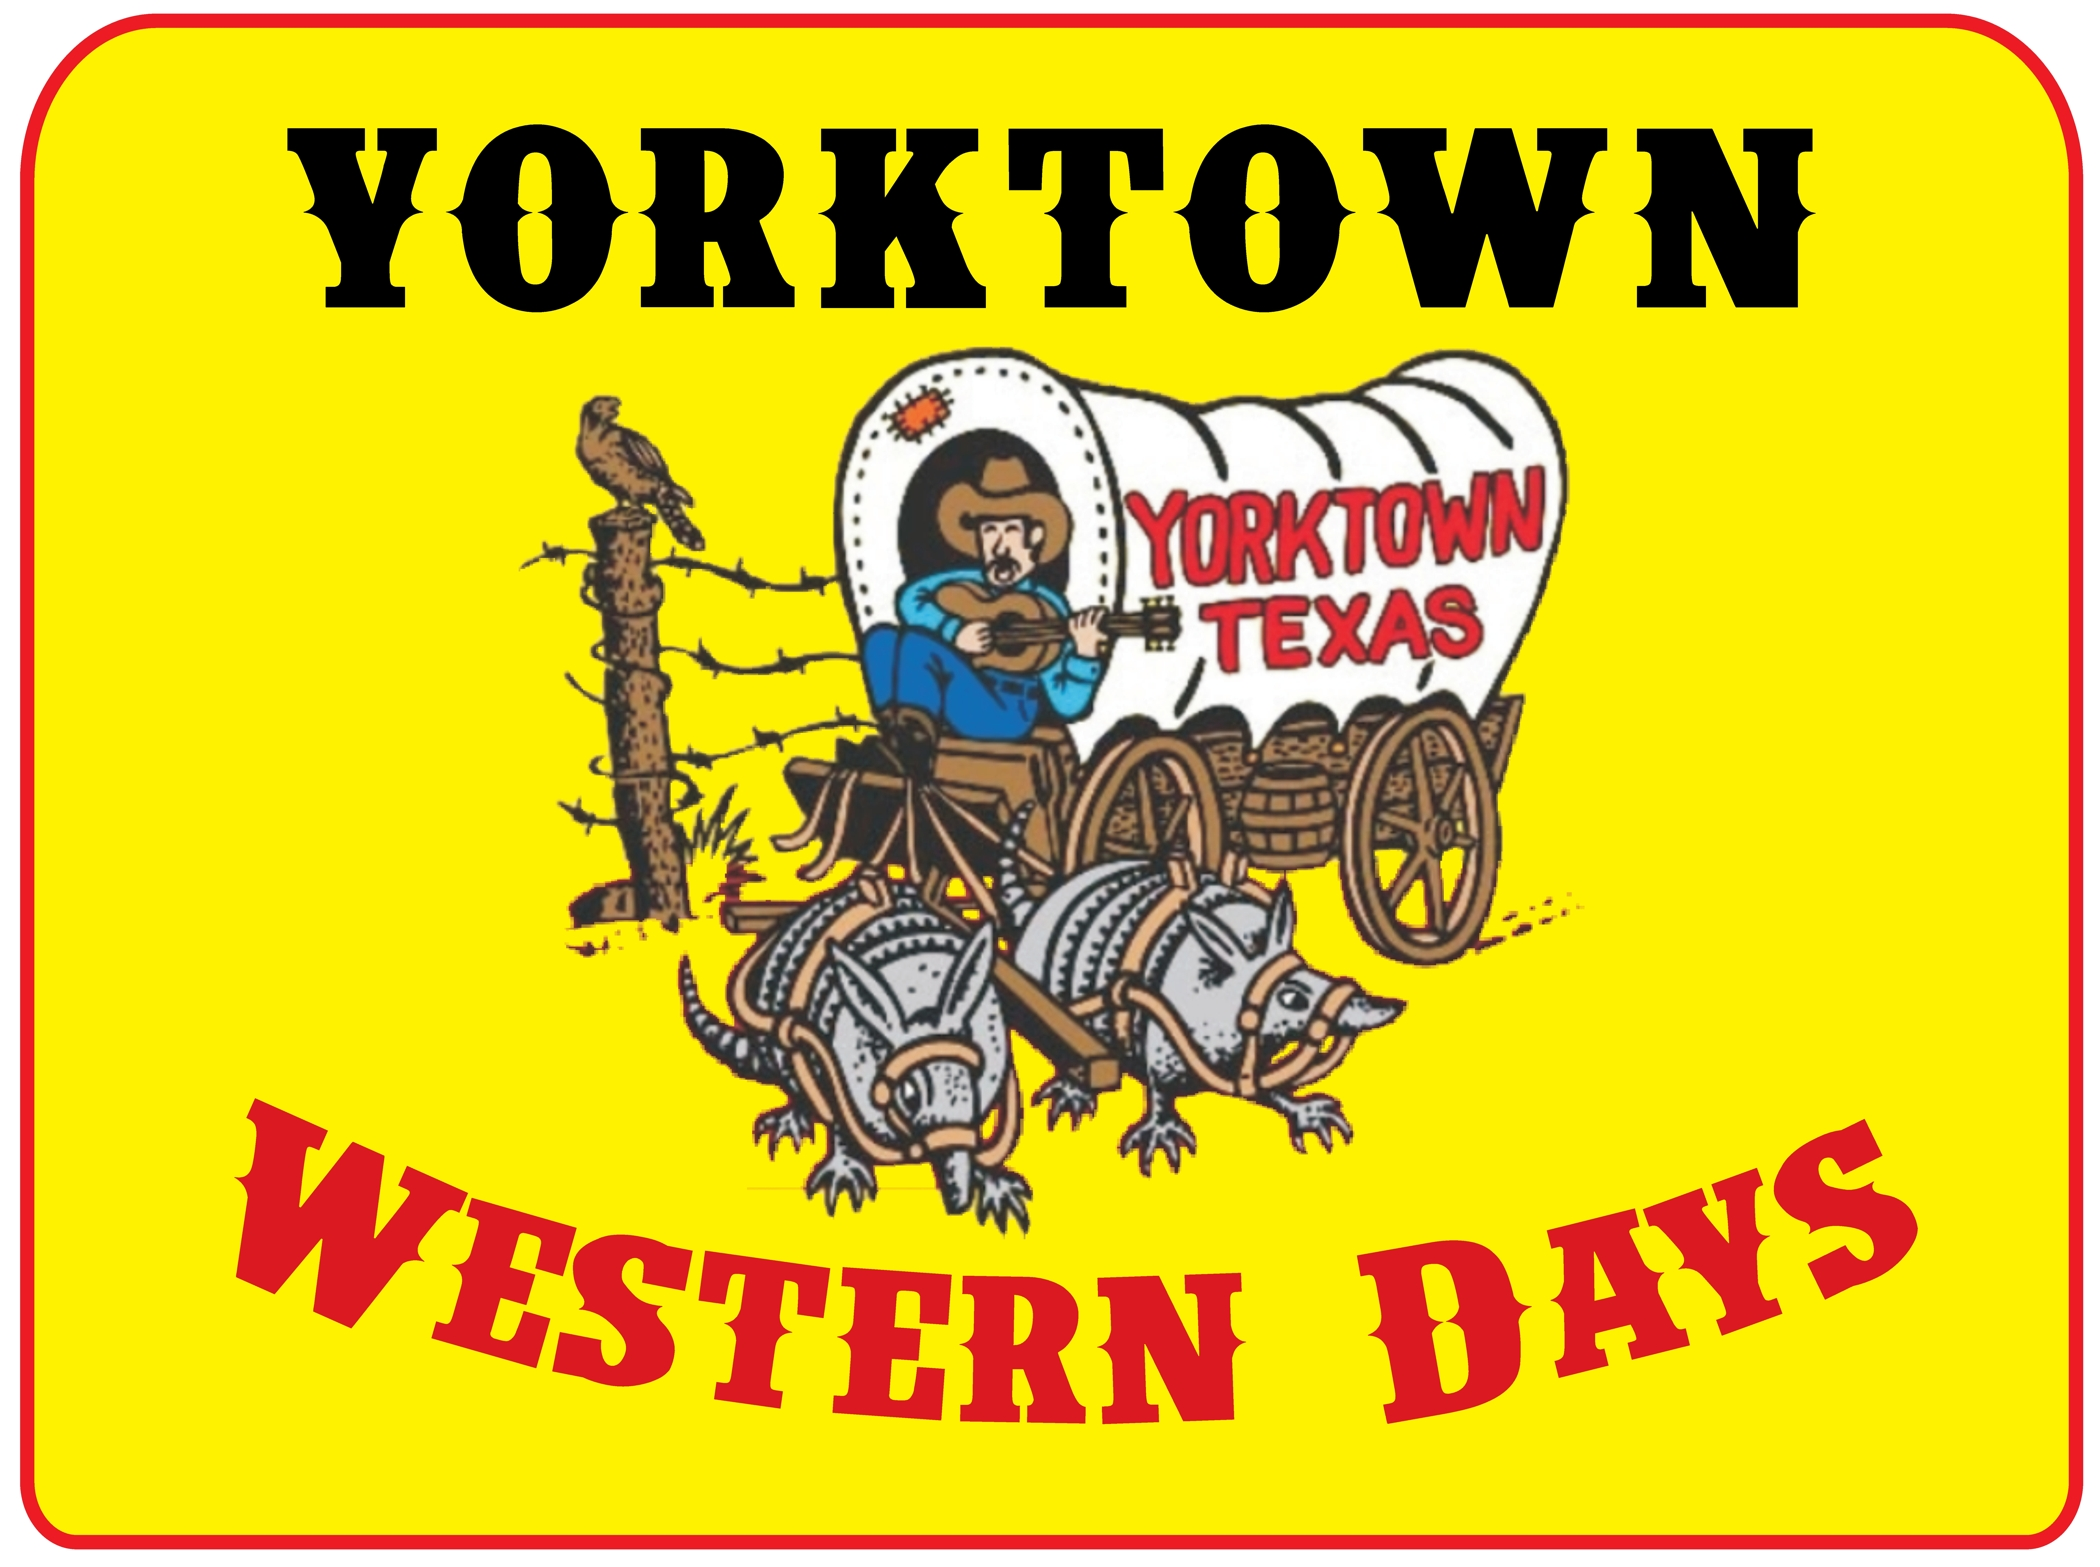 Yorktown 20western 20days 20  20logo 20  20for 20web 20calendar